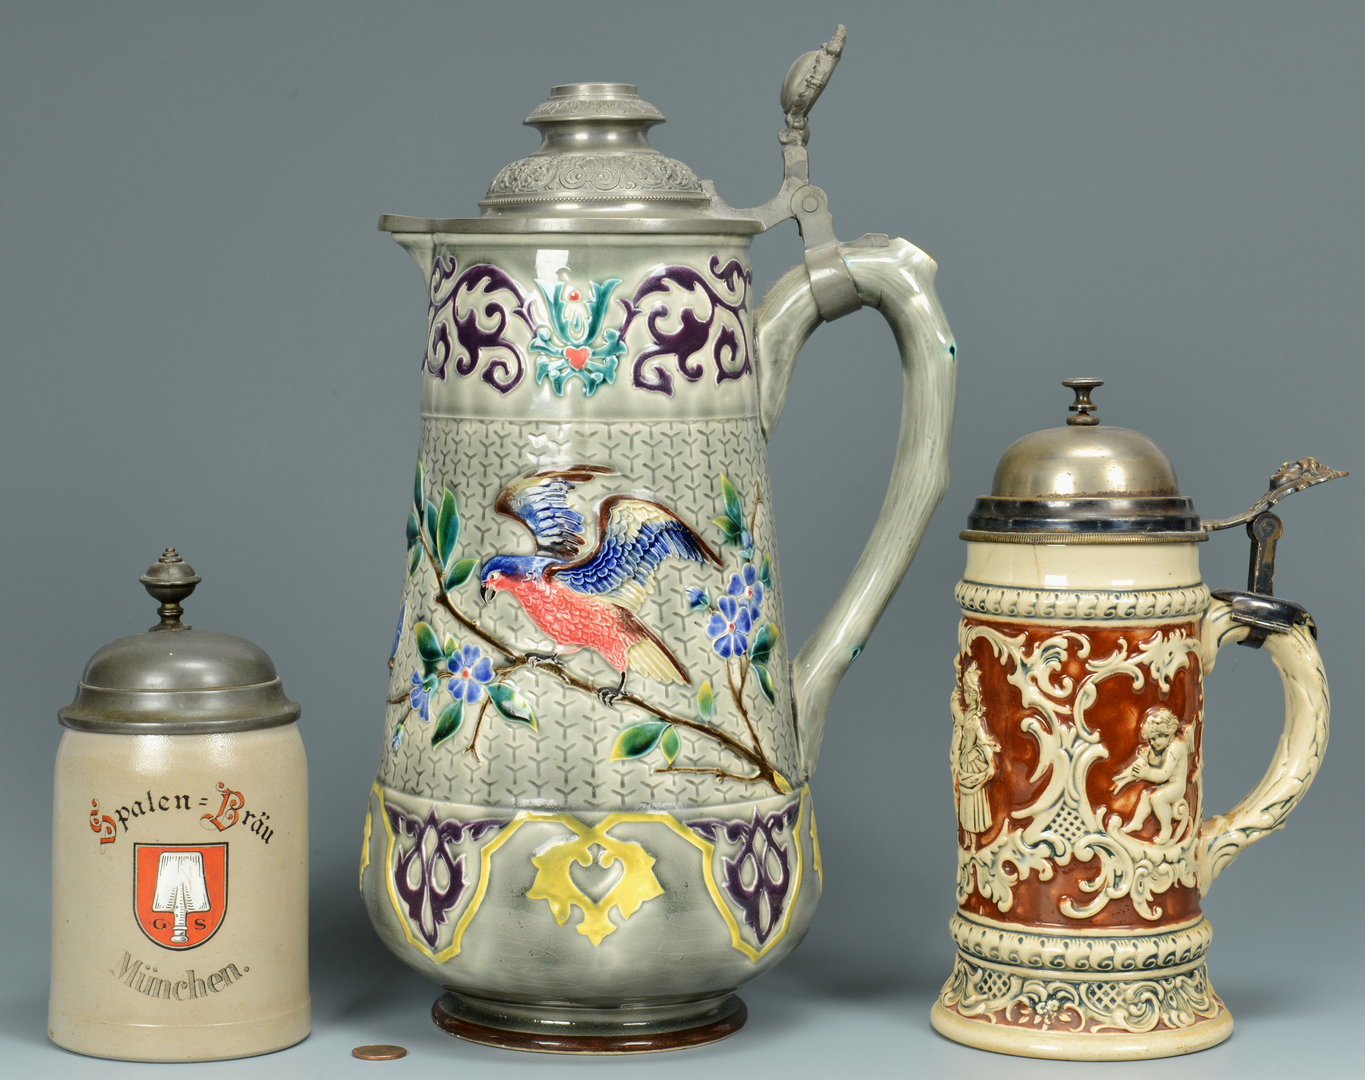 Lot 3088353: Grouping of 3 Steins, incl. Majolica